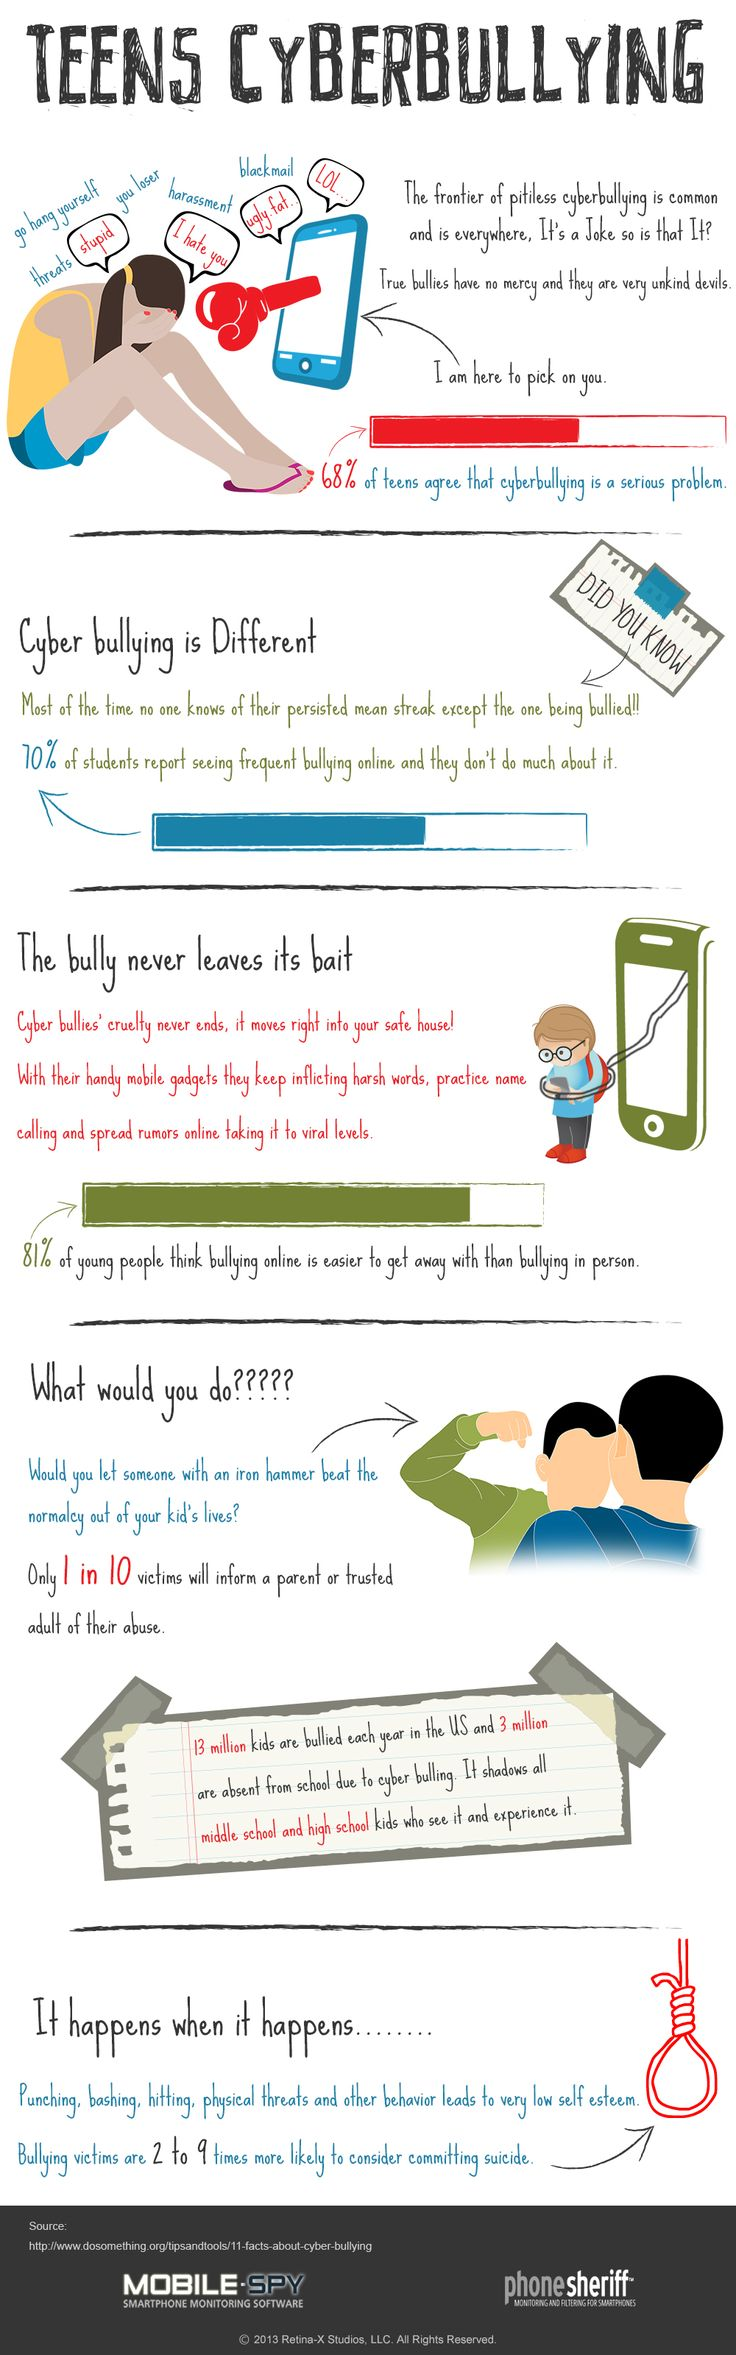 Teens Cyber Bullying #Infographic #Teens #Bullying